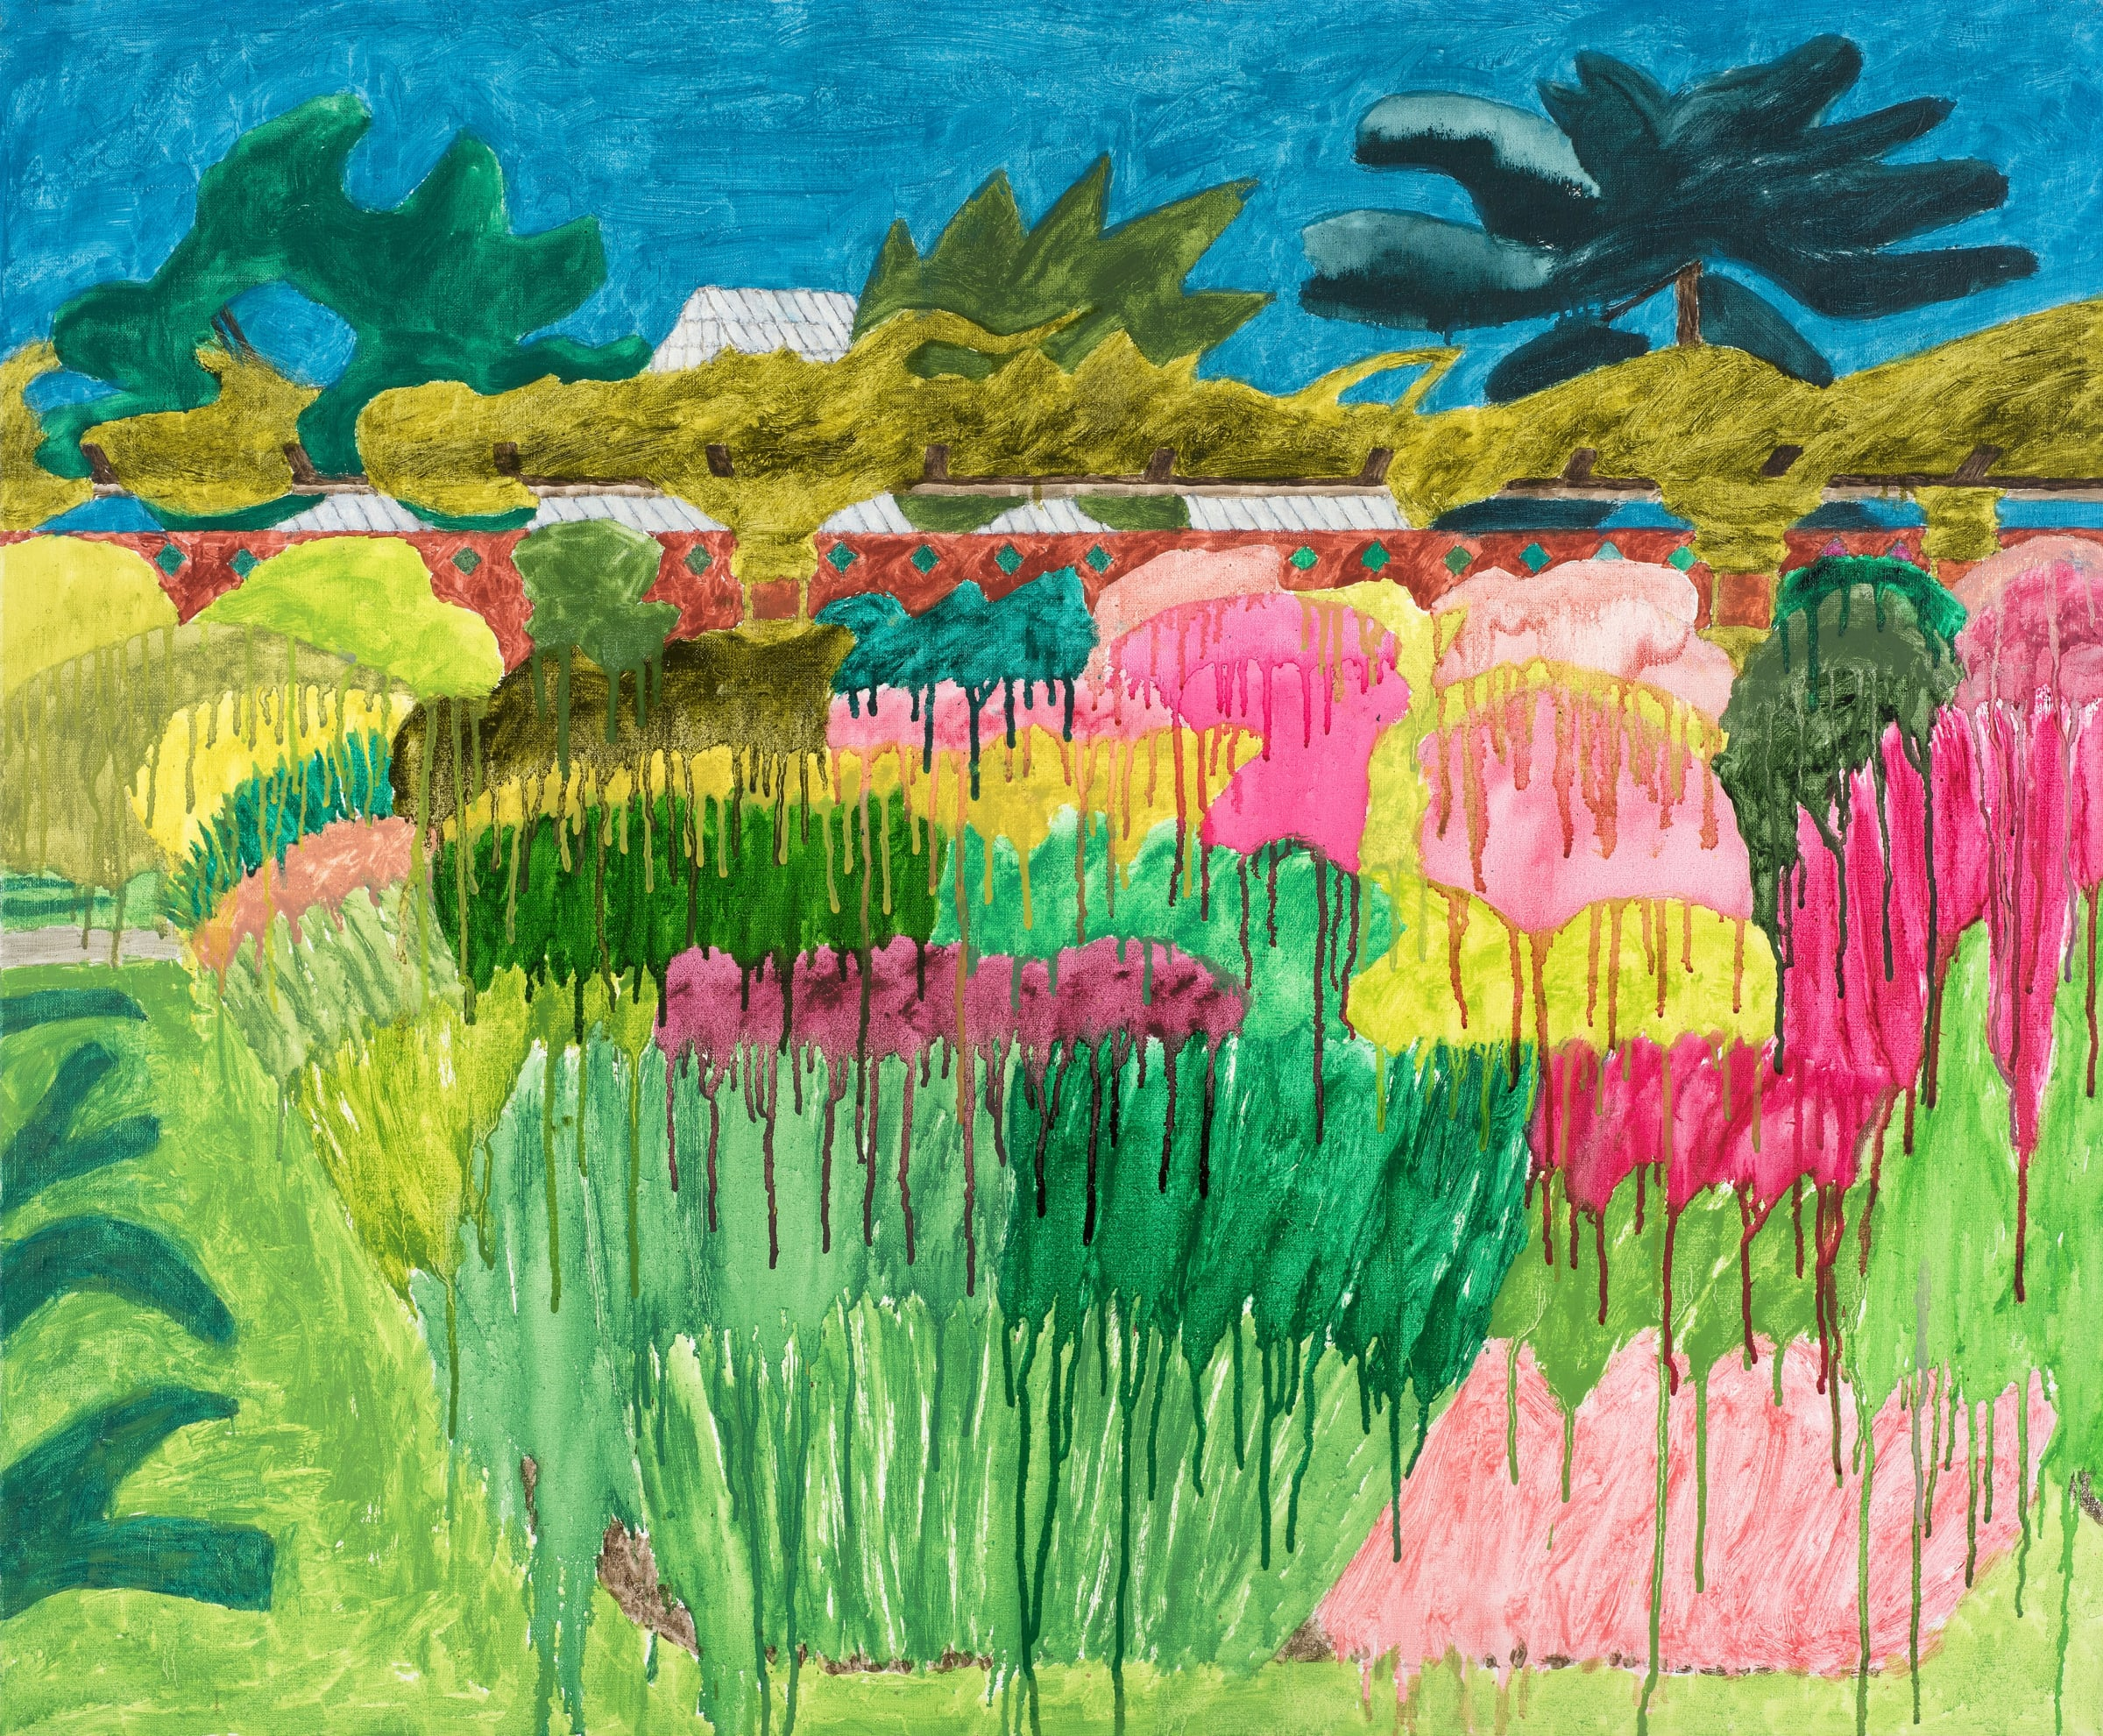 """<span class=""""link fancybox-details-link""""><a href=""""/exhibitions/12/works/image282/"""">View Detail Page</a></span><p><strong>Adrian Berg RA (1929-2011)</strong></p><p>Kew, 21st August</p><p>1998, oil on canvas, 76.5 x 91.5cm</p>"""